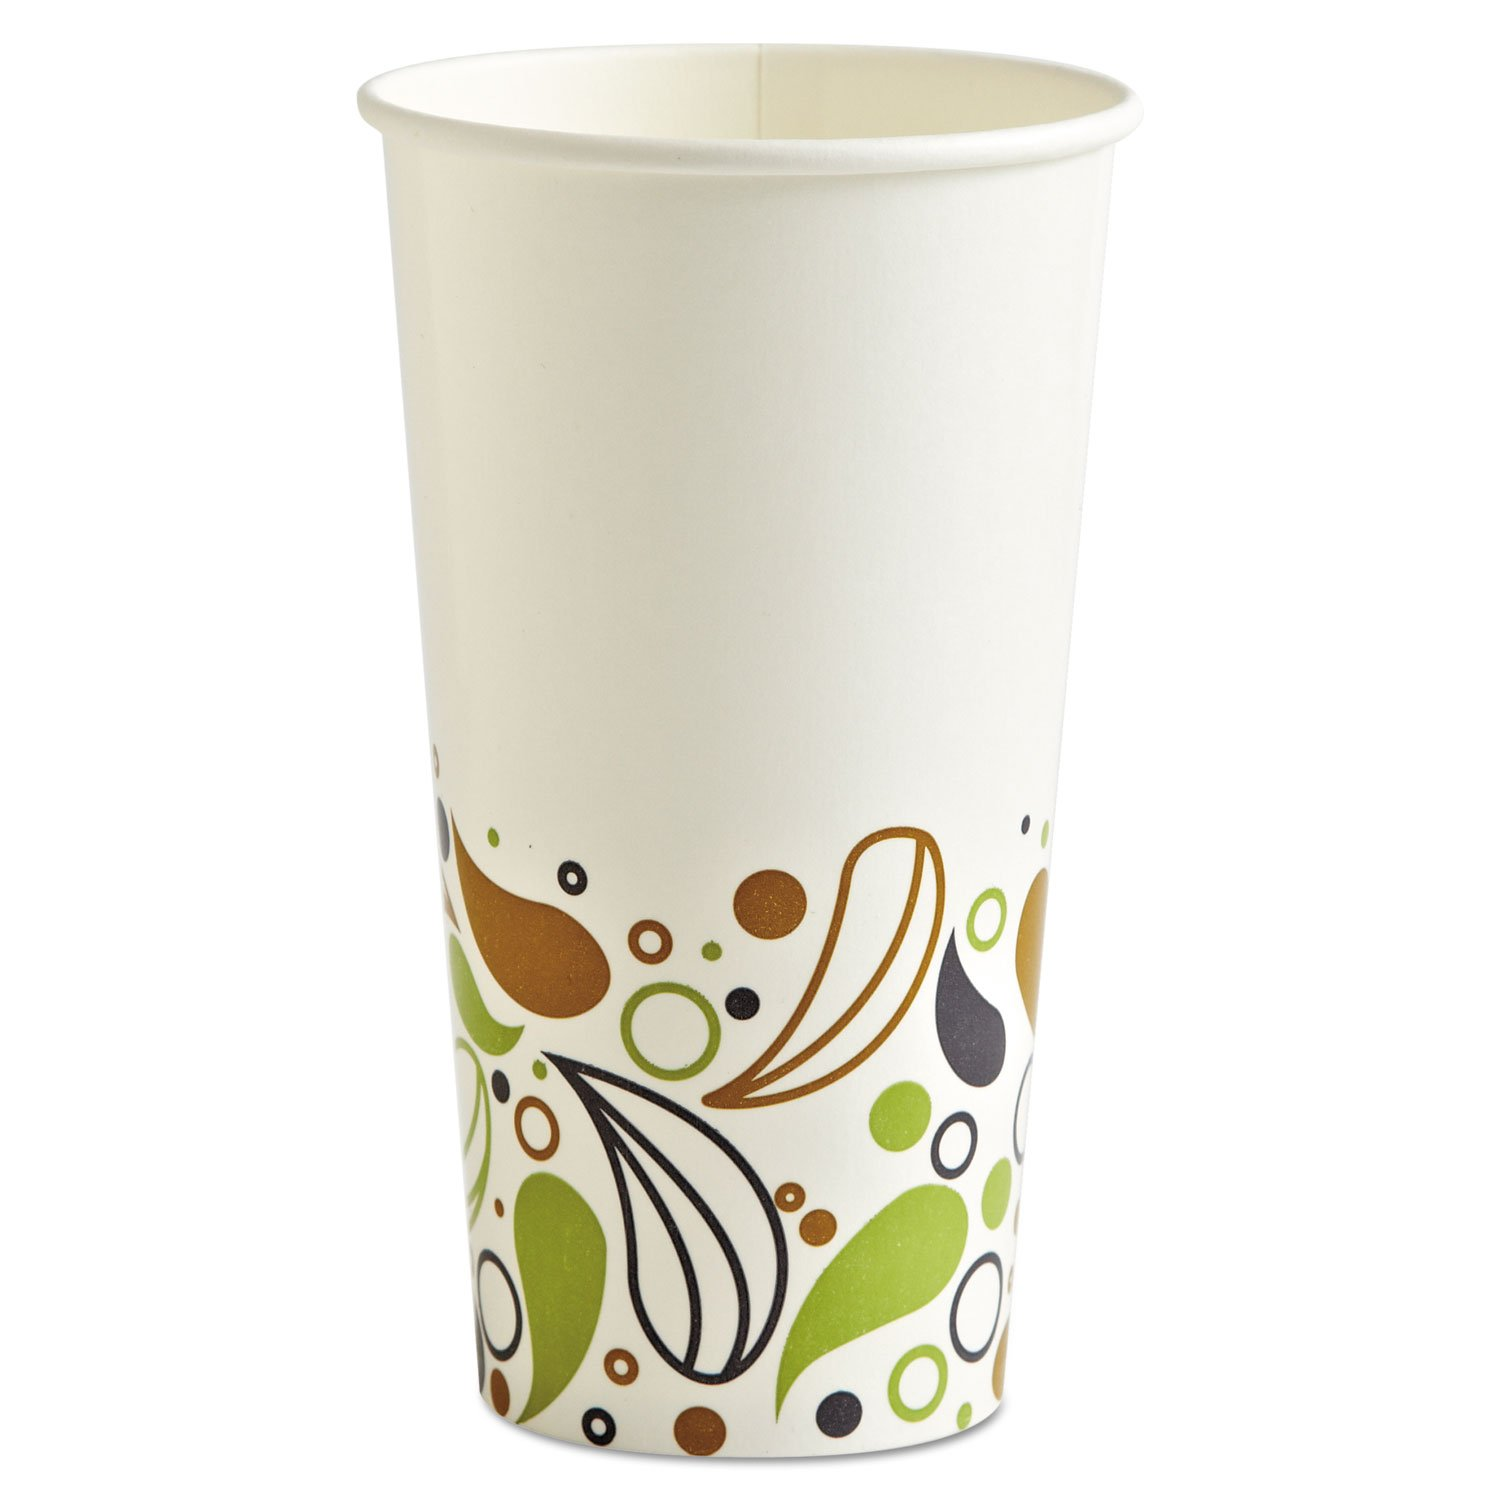 Boardwalk DEER20CCUP Deerfield Printed Paper Cold Cups 20 oz 50 Cups/Pack 20 Packs/Carton by Boardwalk